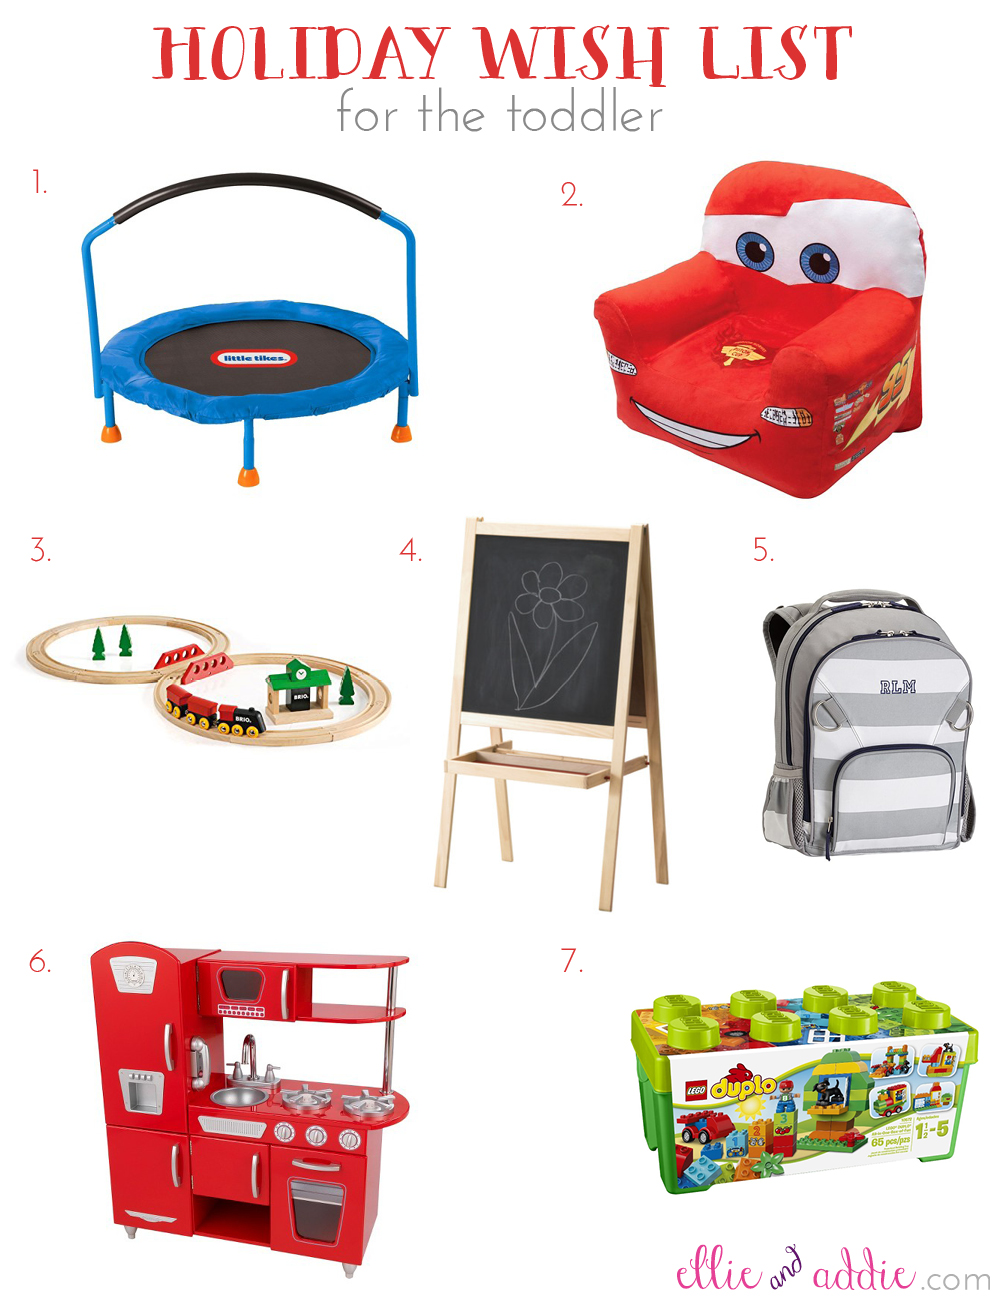 Holiday Wish List for the Toddler | Ellie And Addie